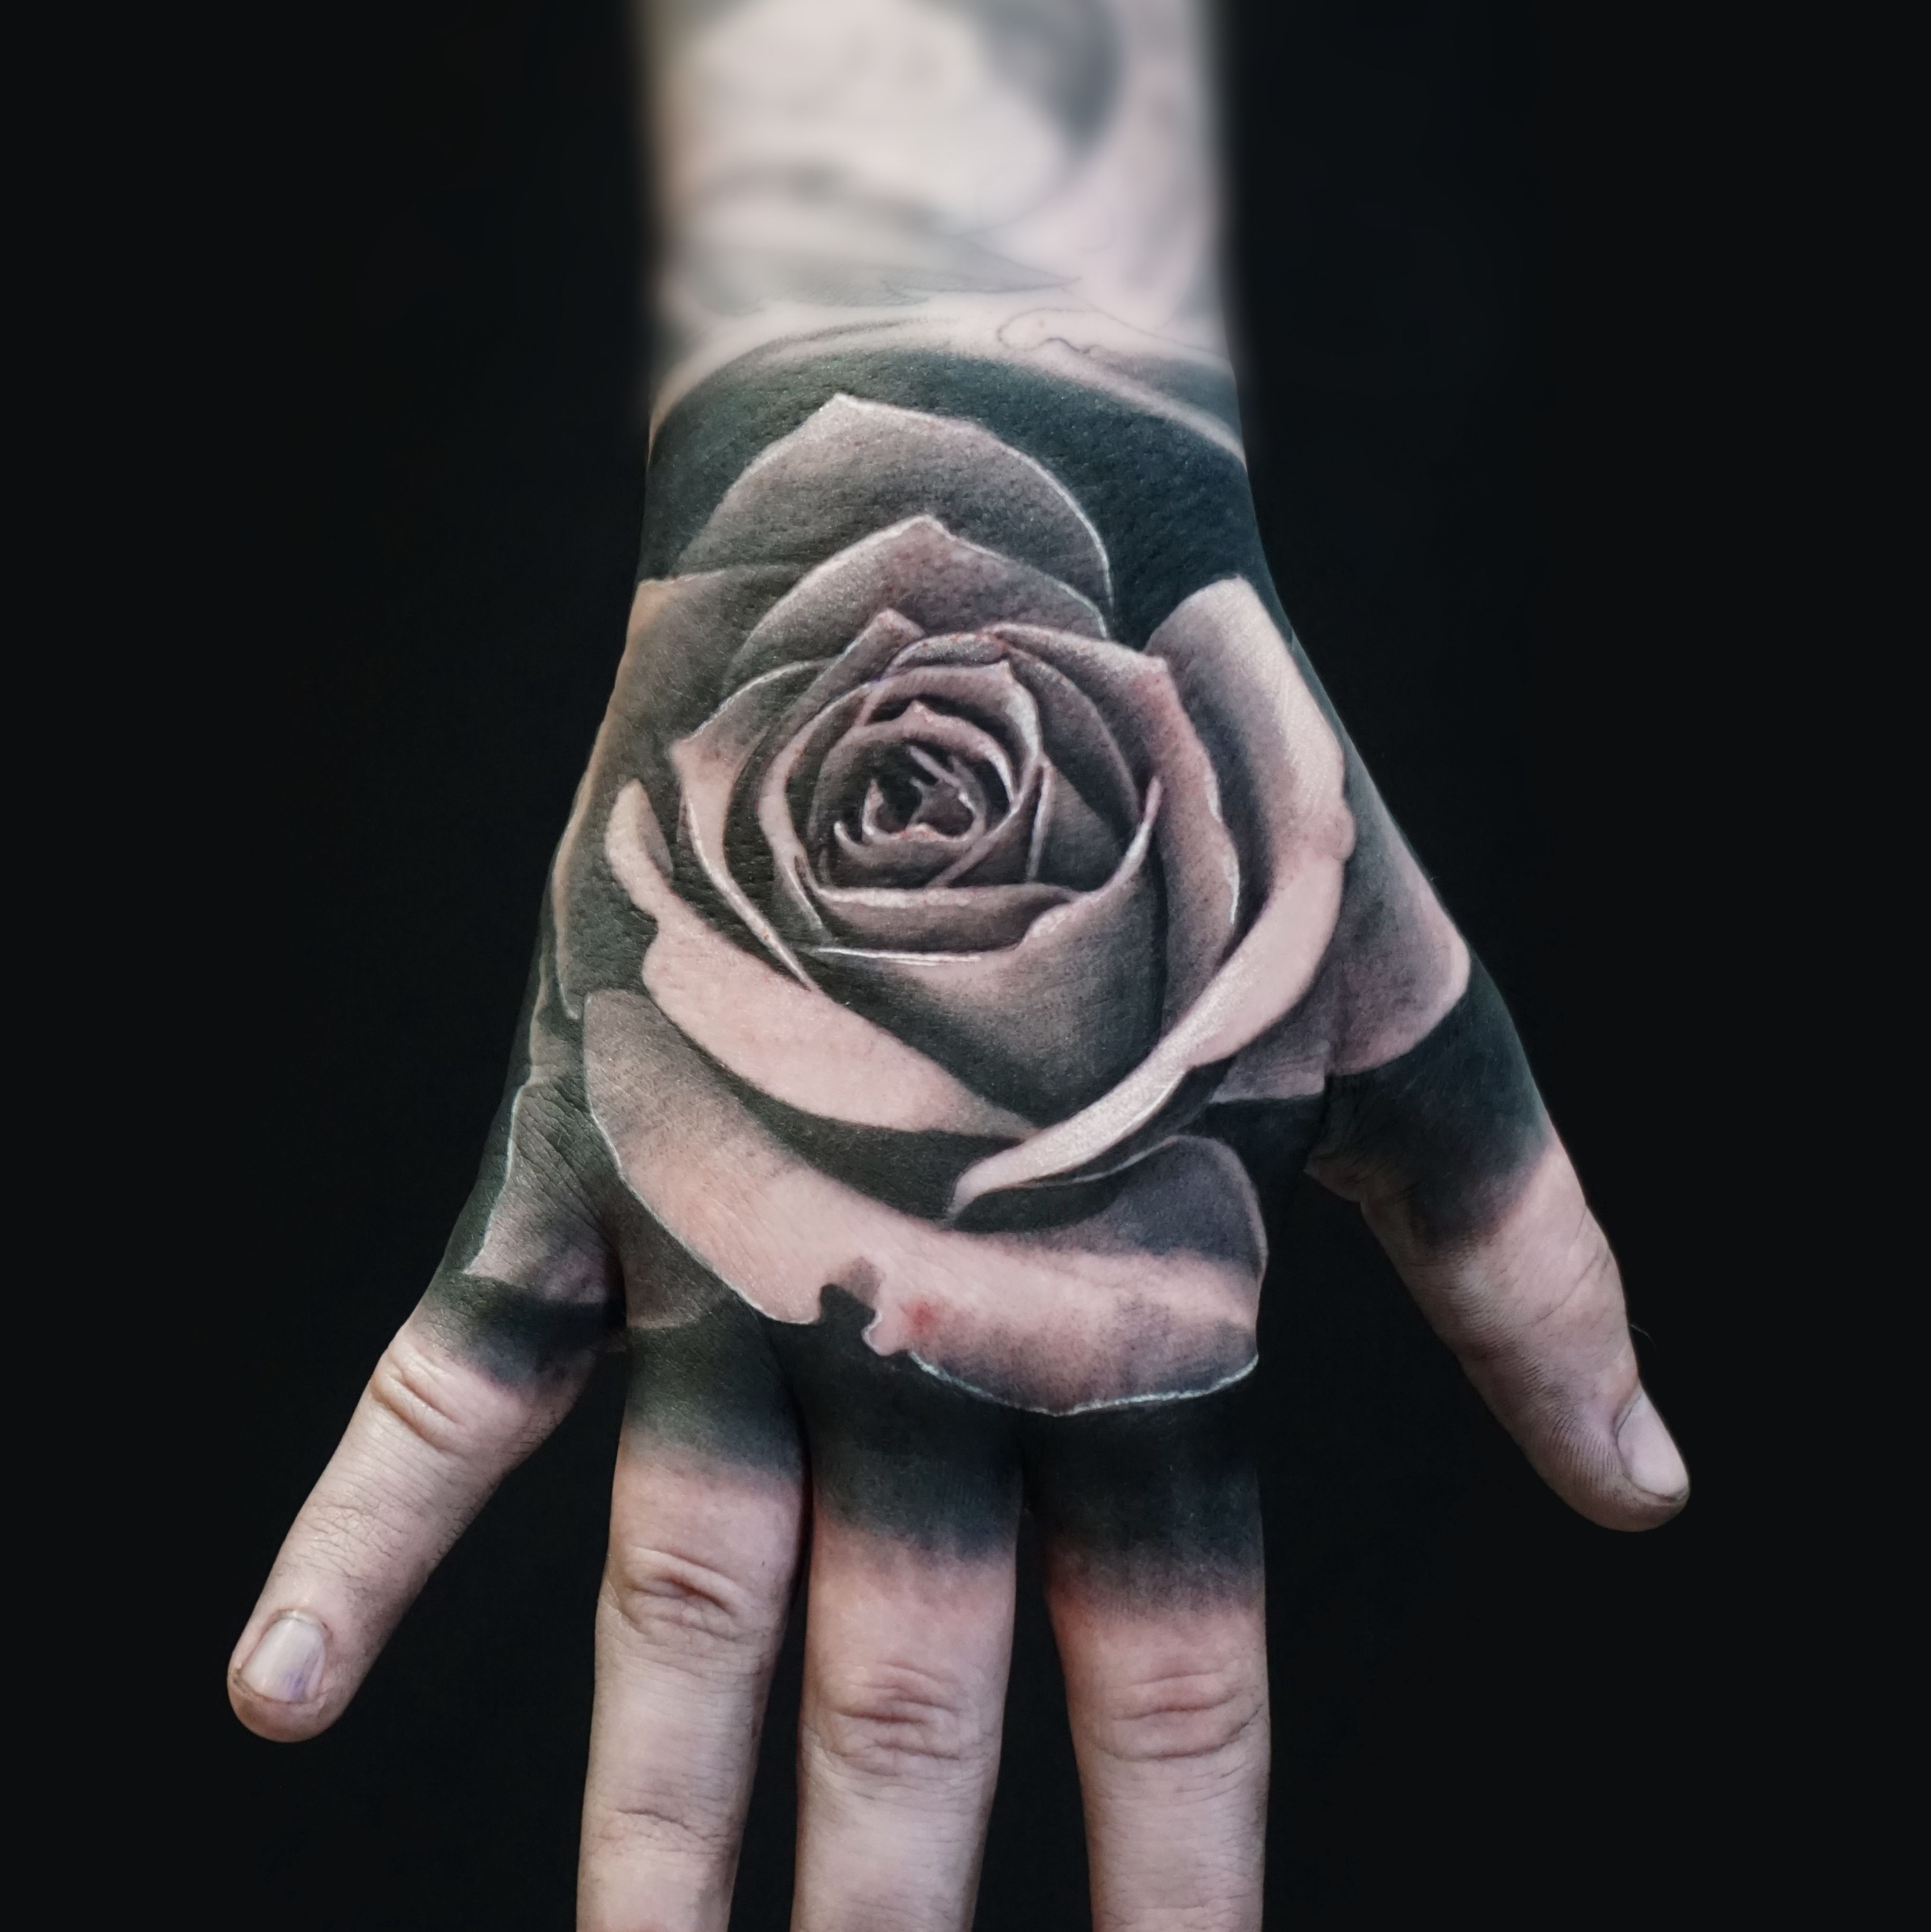 Black and grey tattoos full sleeves portraits realism